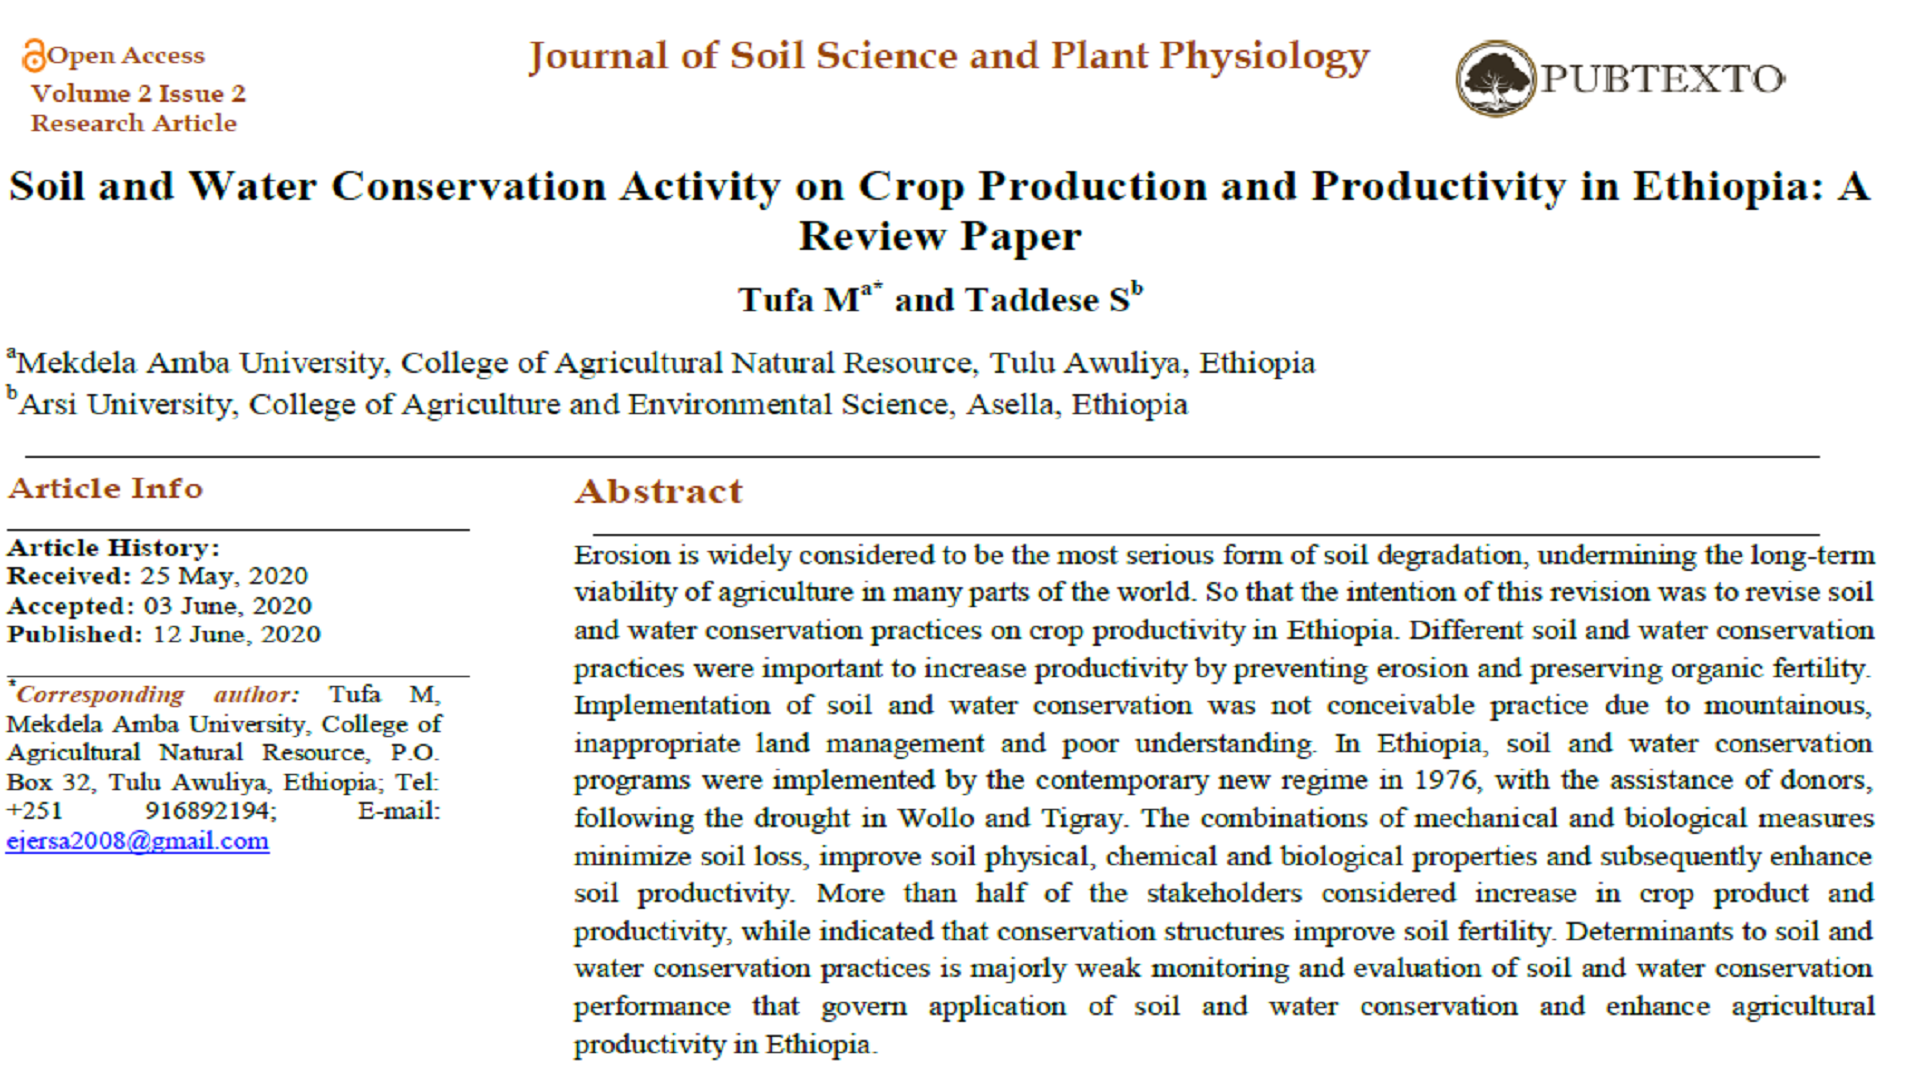 Soil and Water Conservation Activity on Crop Production and Productivity in Ethiopia: A Review Paper